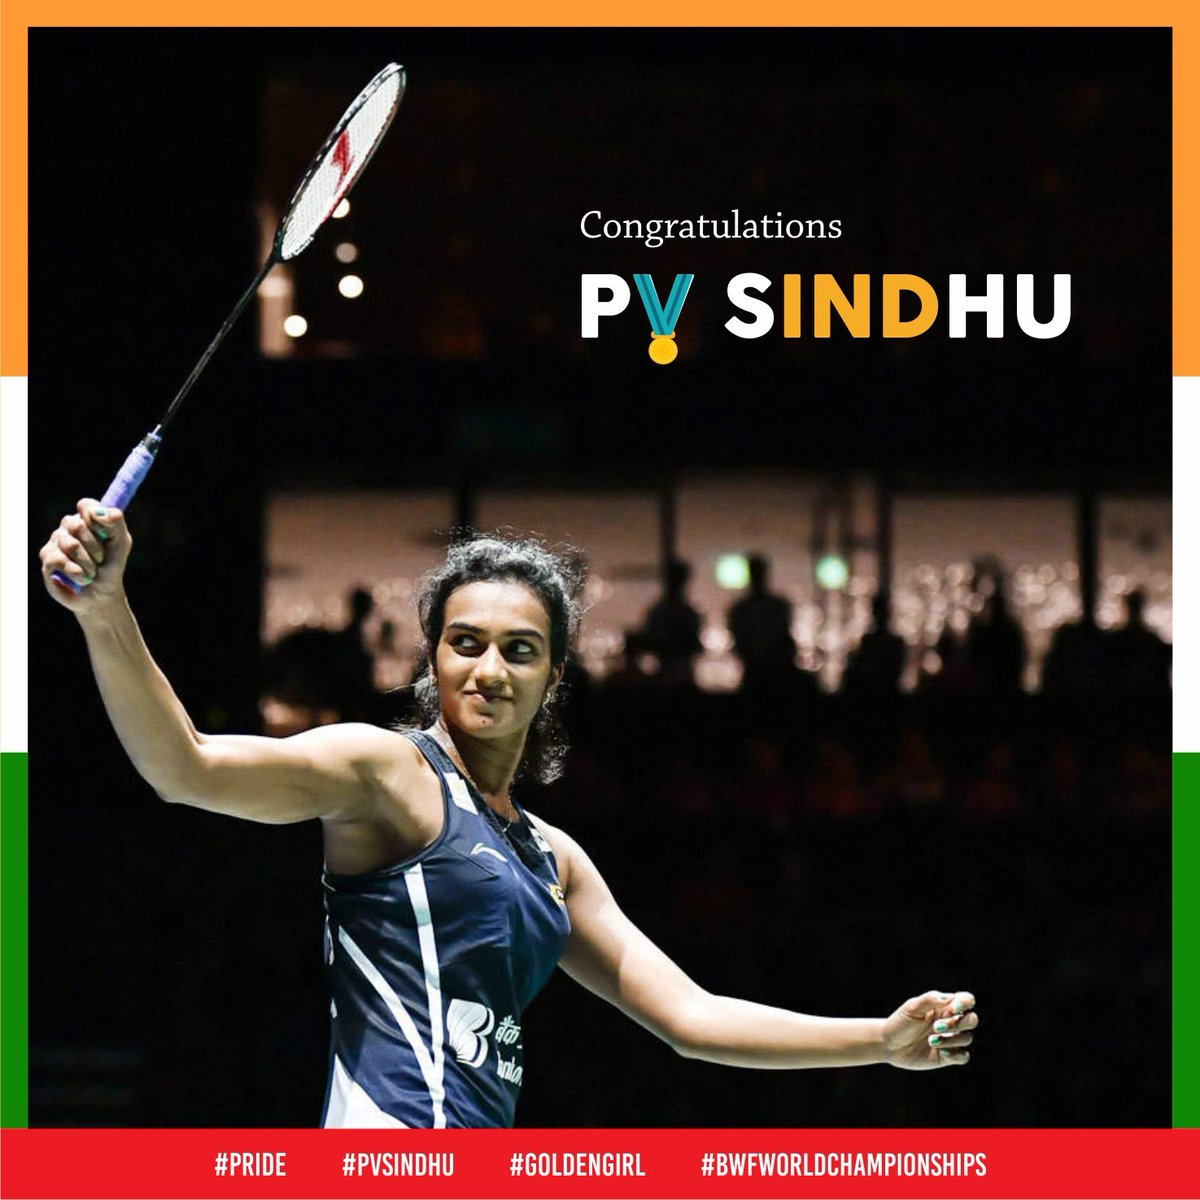 Congratulations @Pvsindhu1  on becoming the first Indian to be crowned as the world champion at #BWFWC2019.  . . #proudindian #pride<br>http://pic.twitter.com/i847xr3PhS